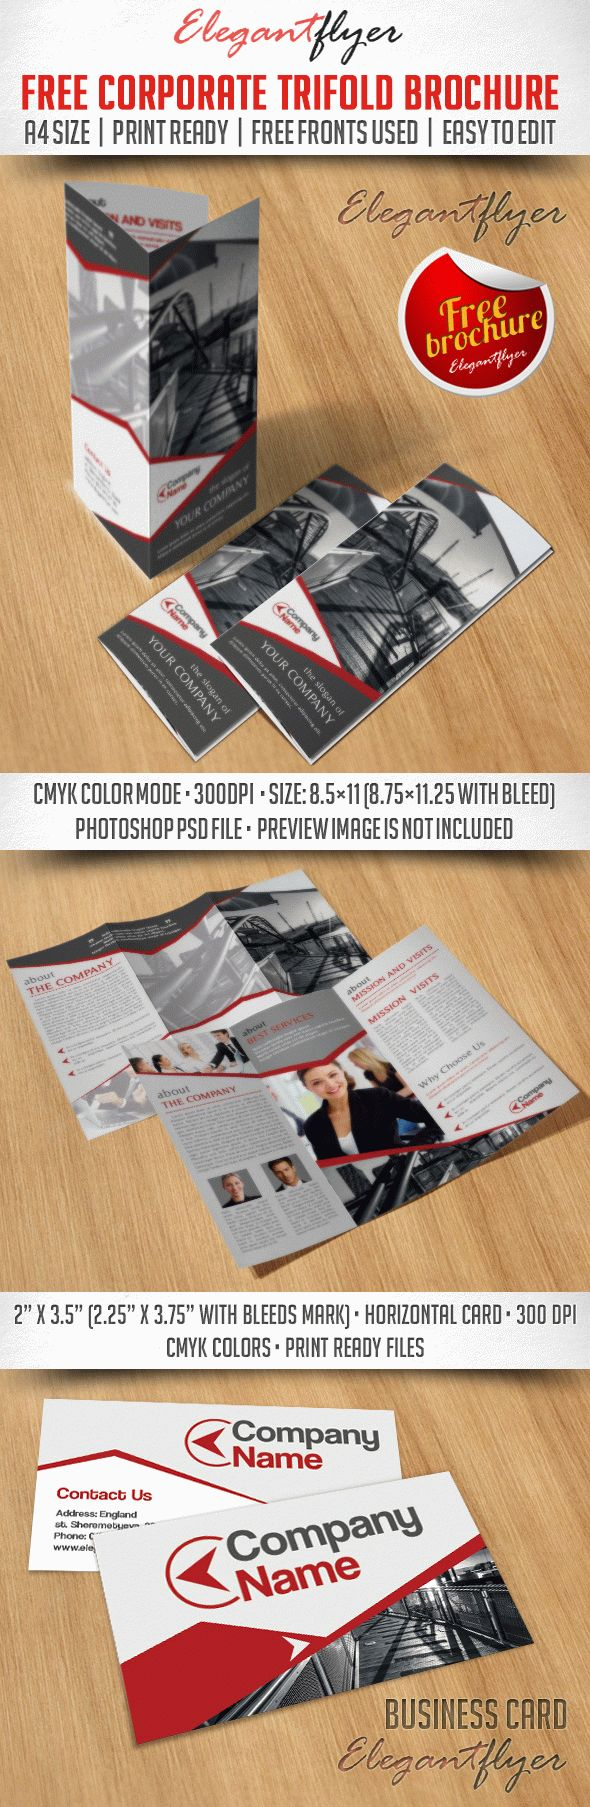 Free Business Corporate Tri-Fold Brochure